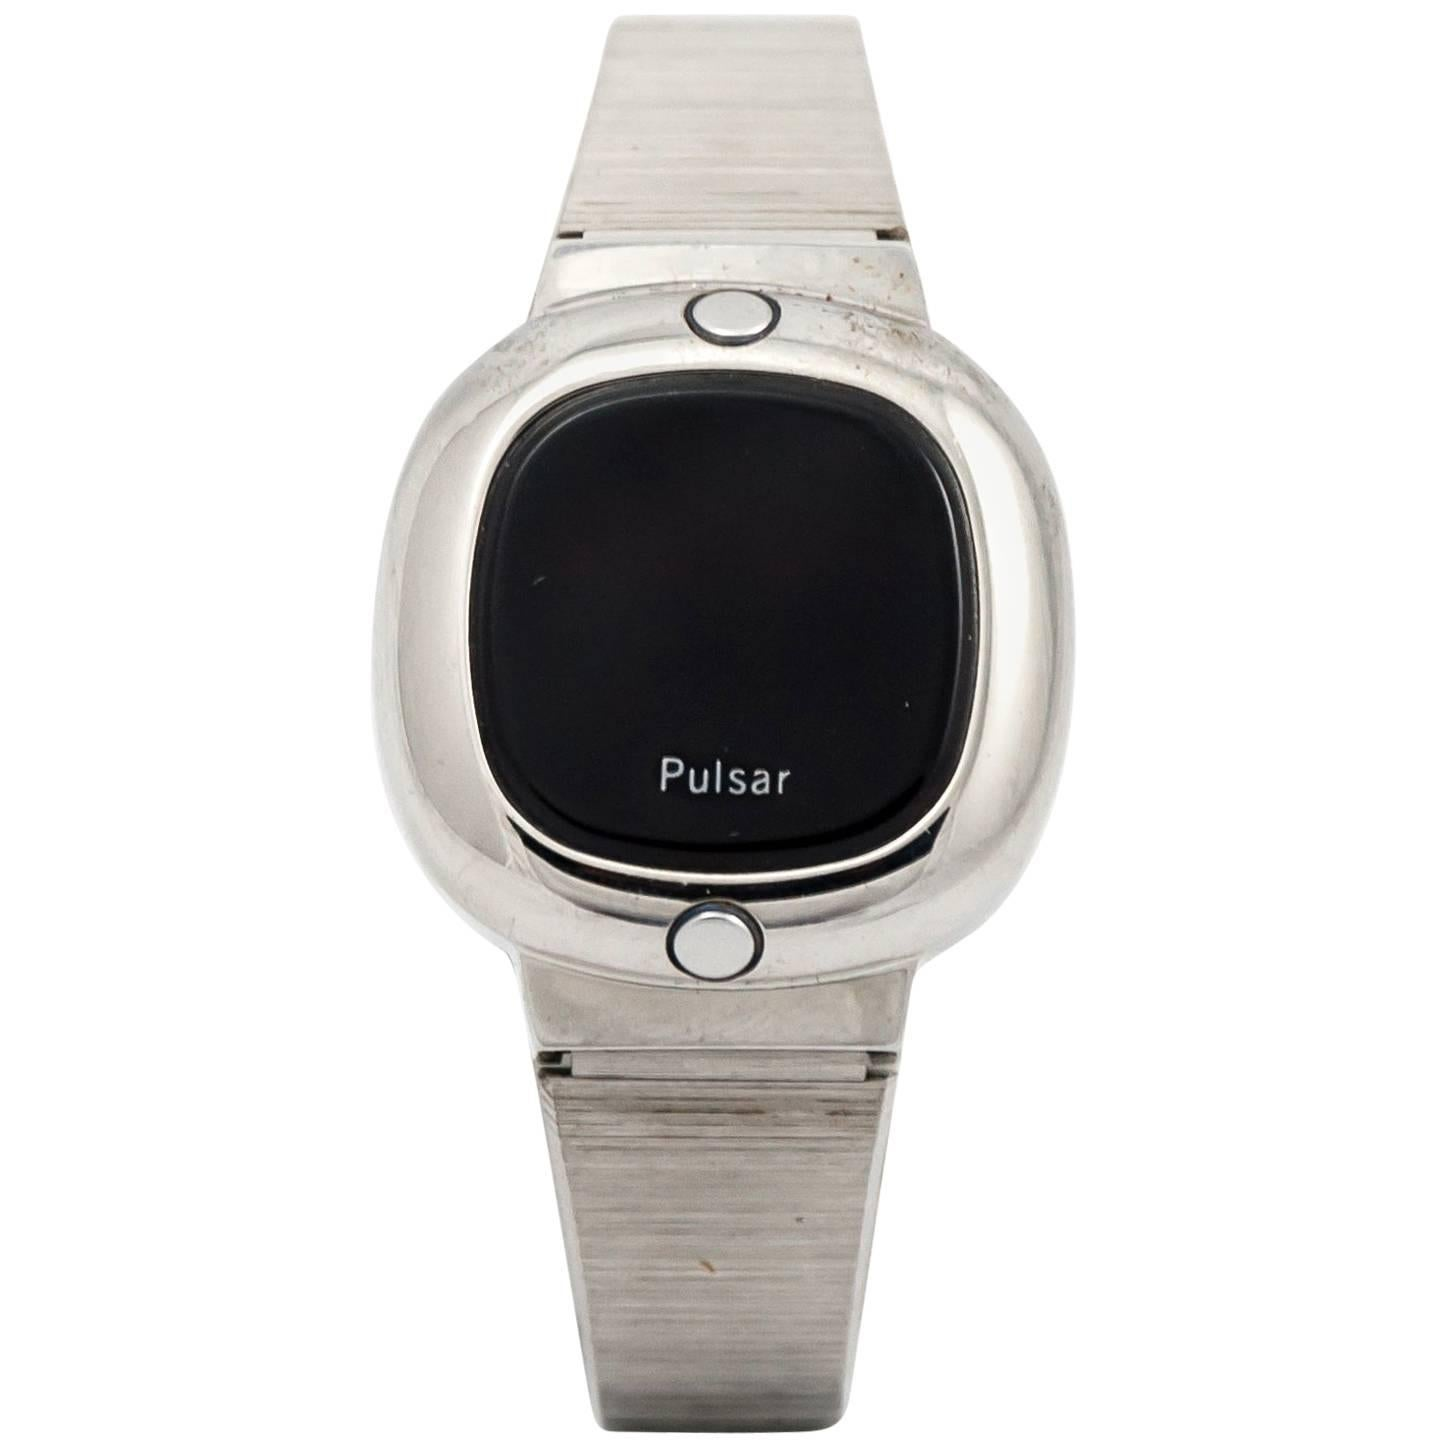 Pulsar Last Wristwatch from the Brand Who Invented the LCD Wristwatch